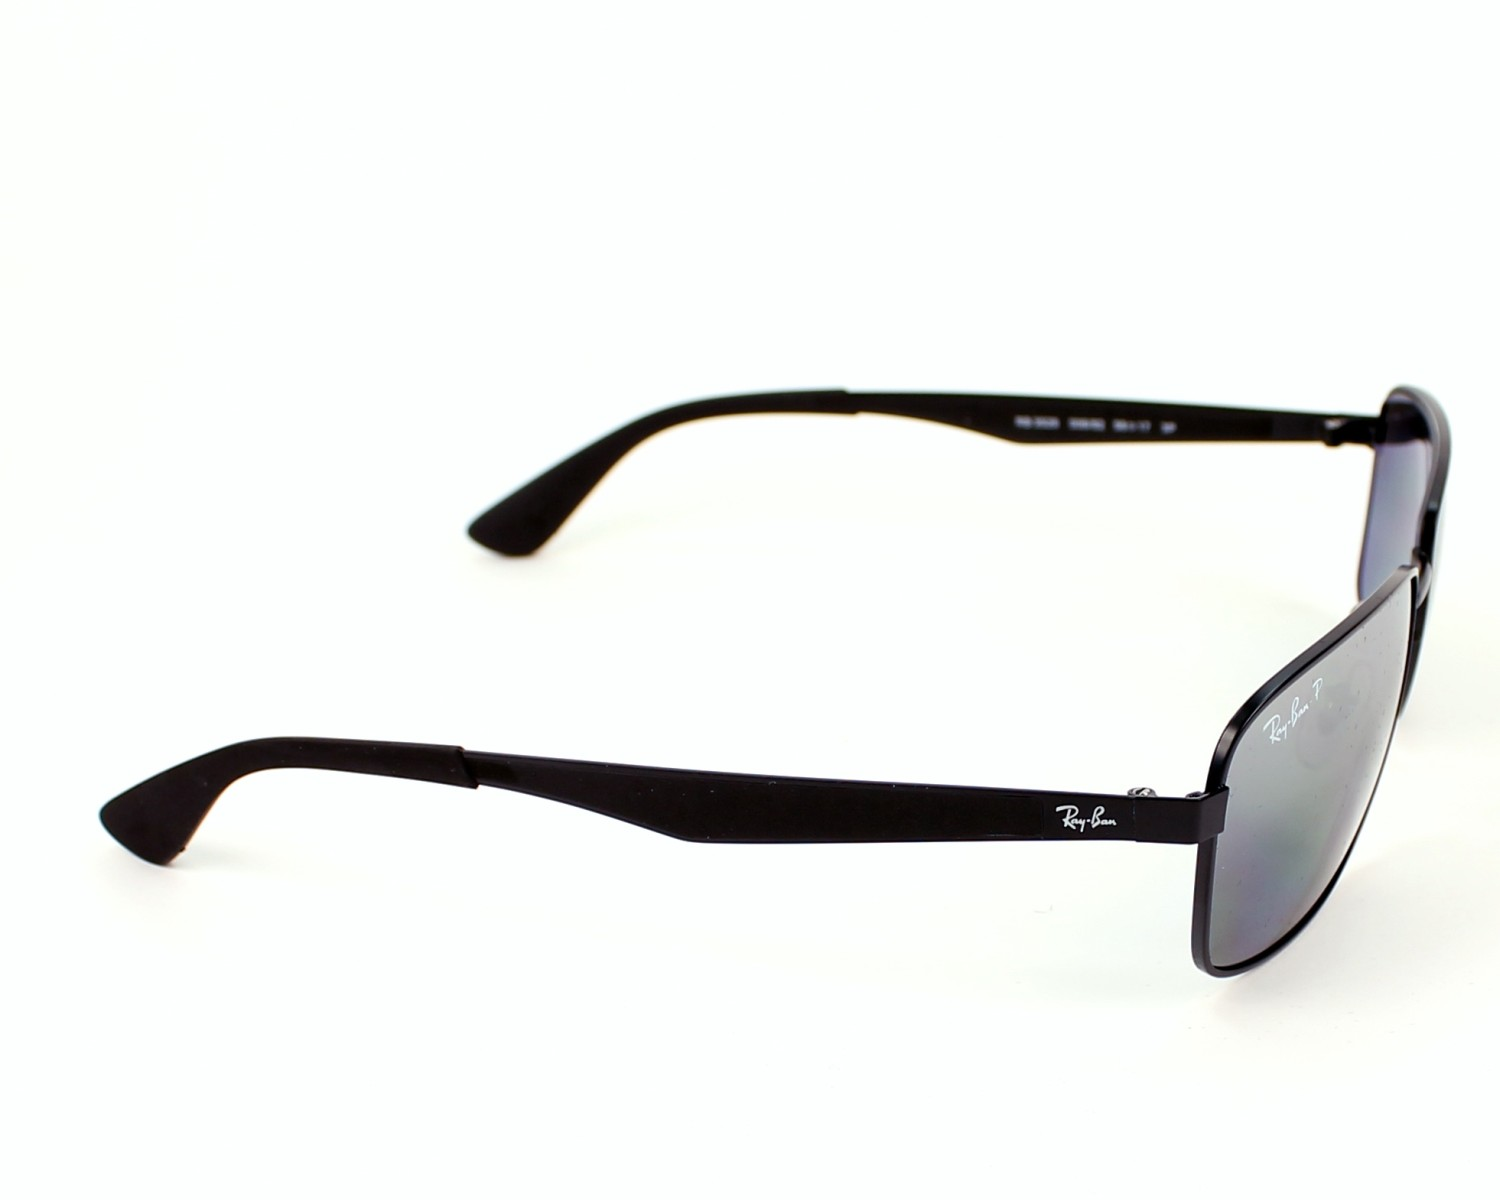 783fdb5aec thumbnail Sunglasses Ray-Ban RB-3529 006 82 - Black side view